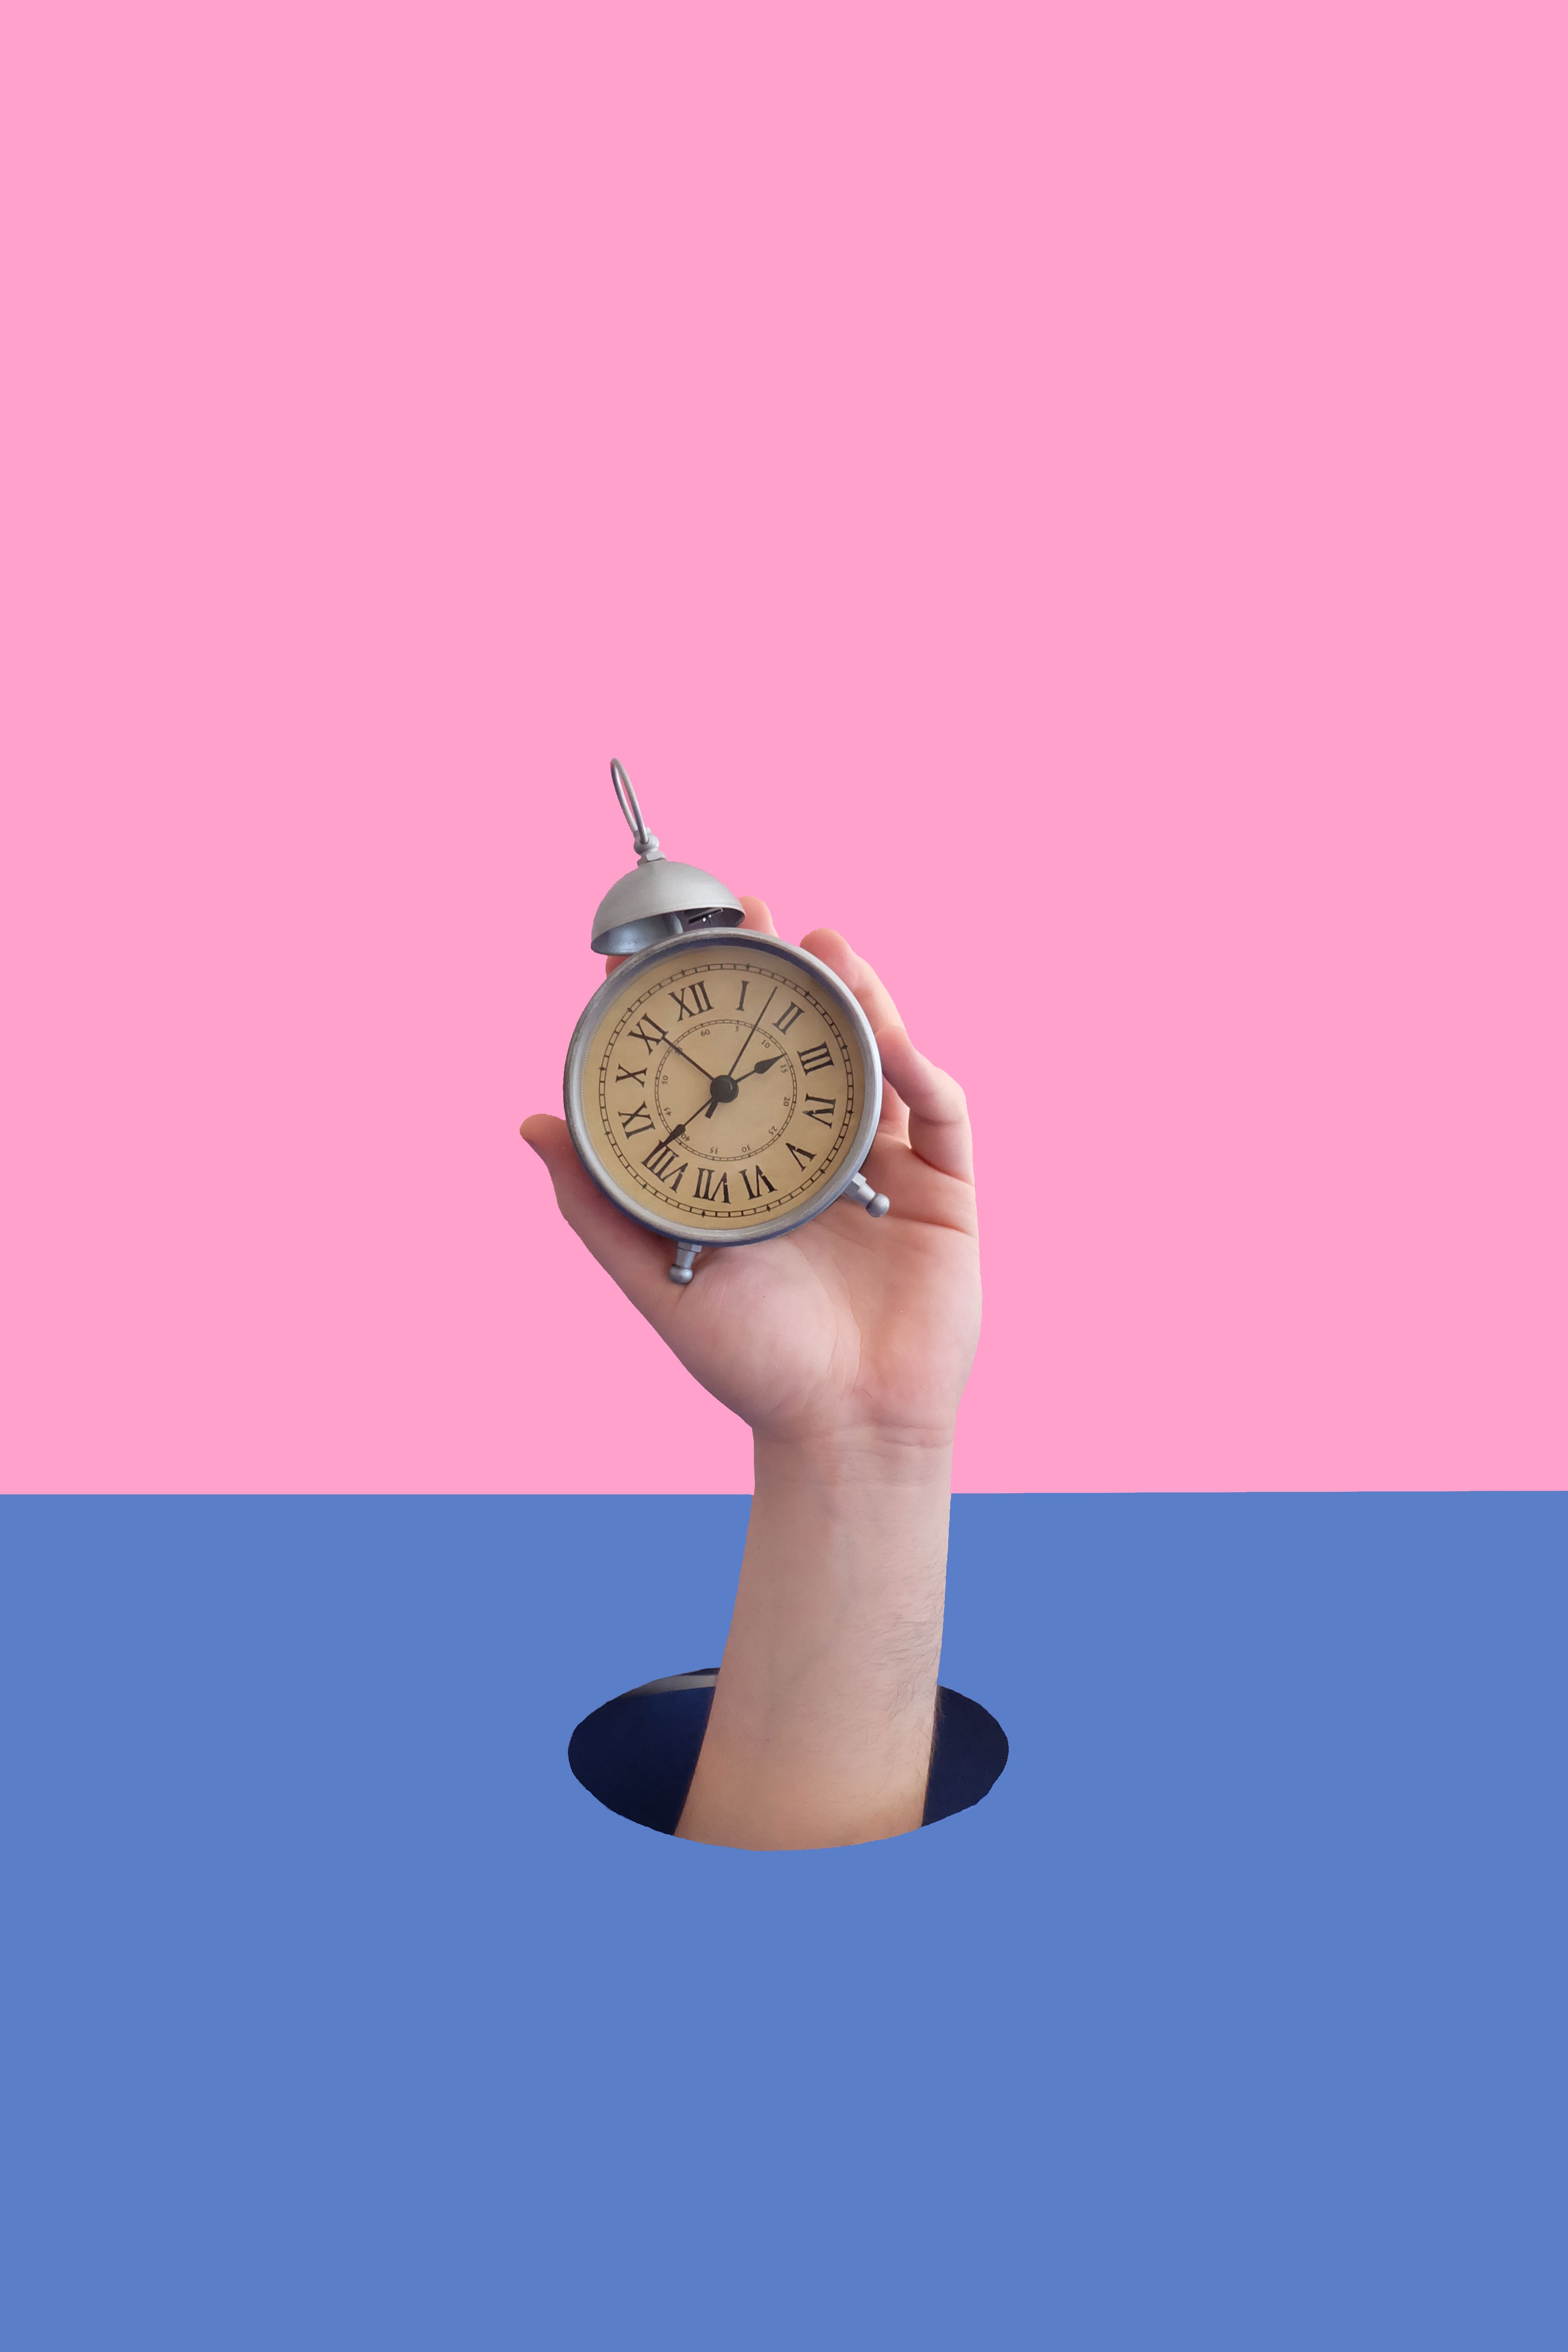 an arm holding an old clock against a blue and pink backdrop